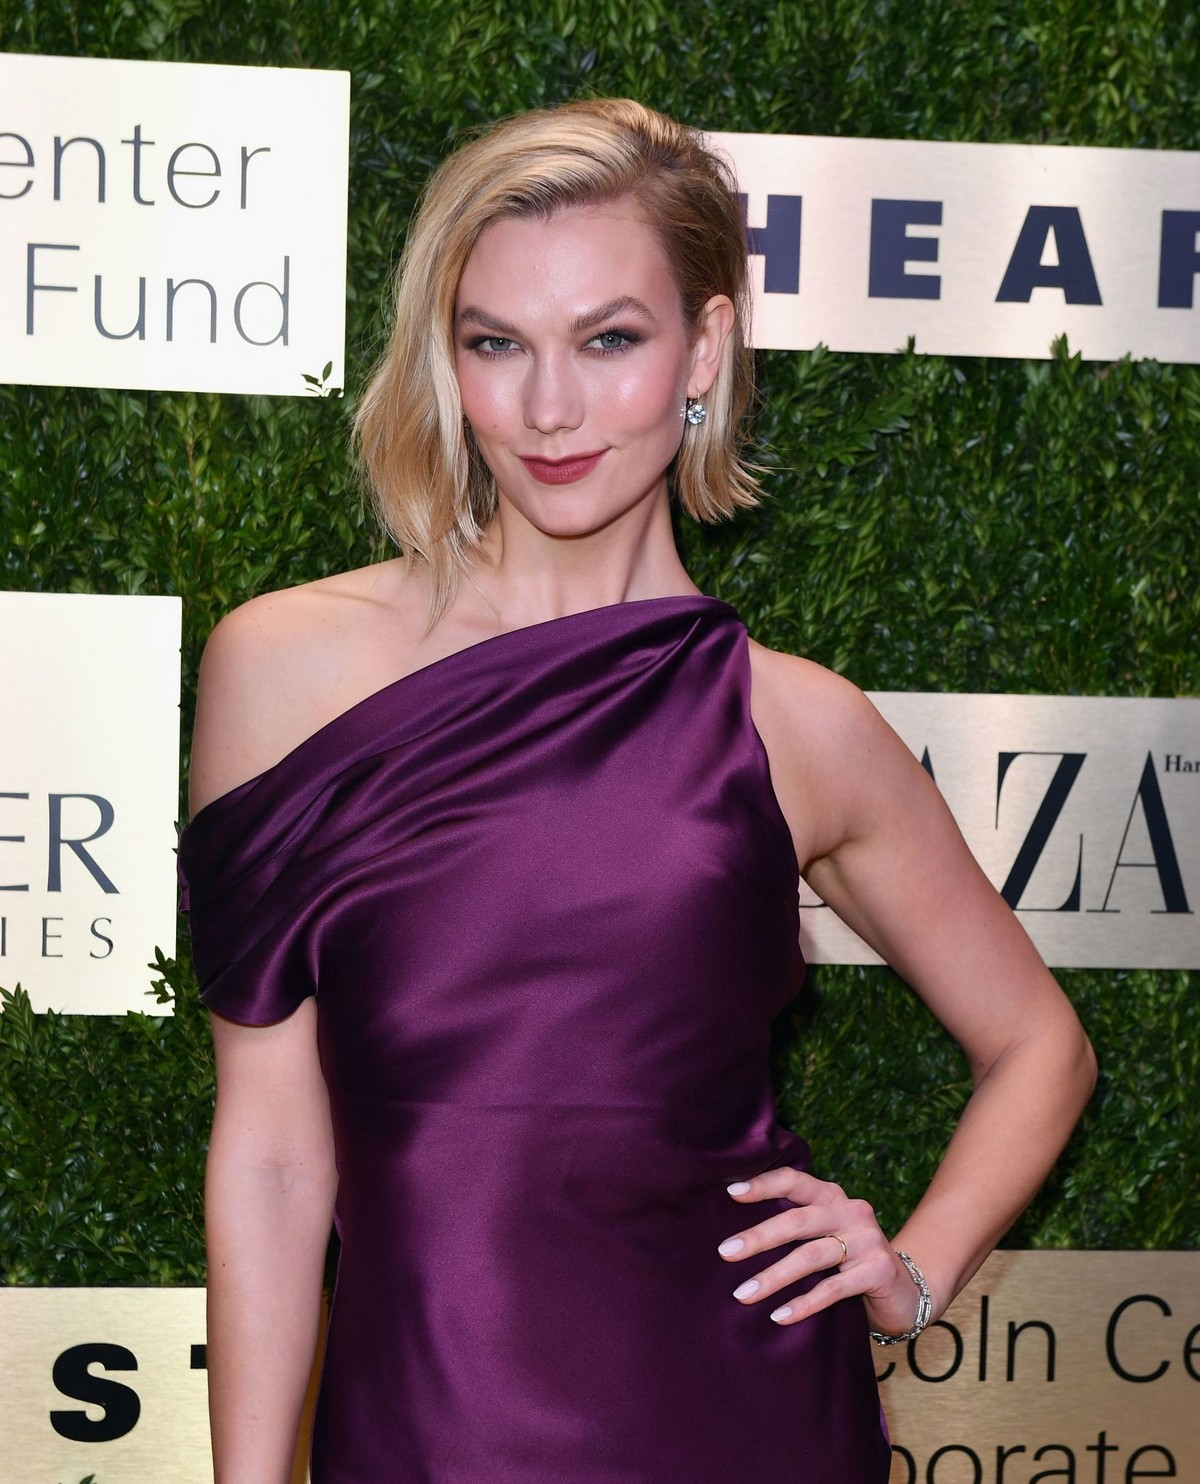 Karlie Kloss attends Lincoln Center Corporate Fashion Fund Gala in New York City 2019/11/18 11